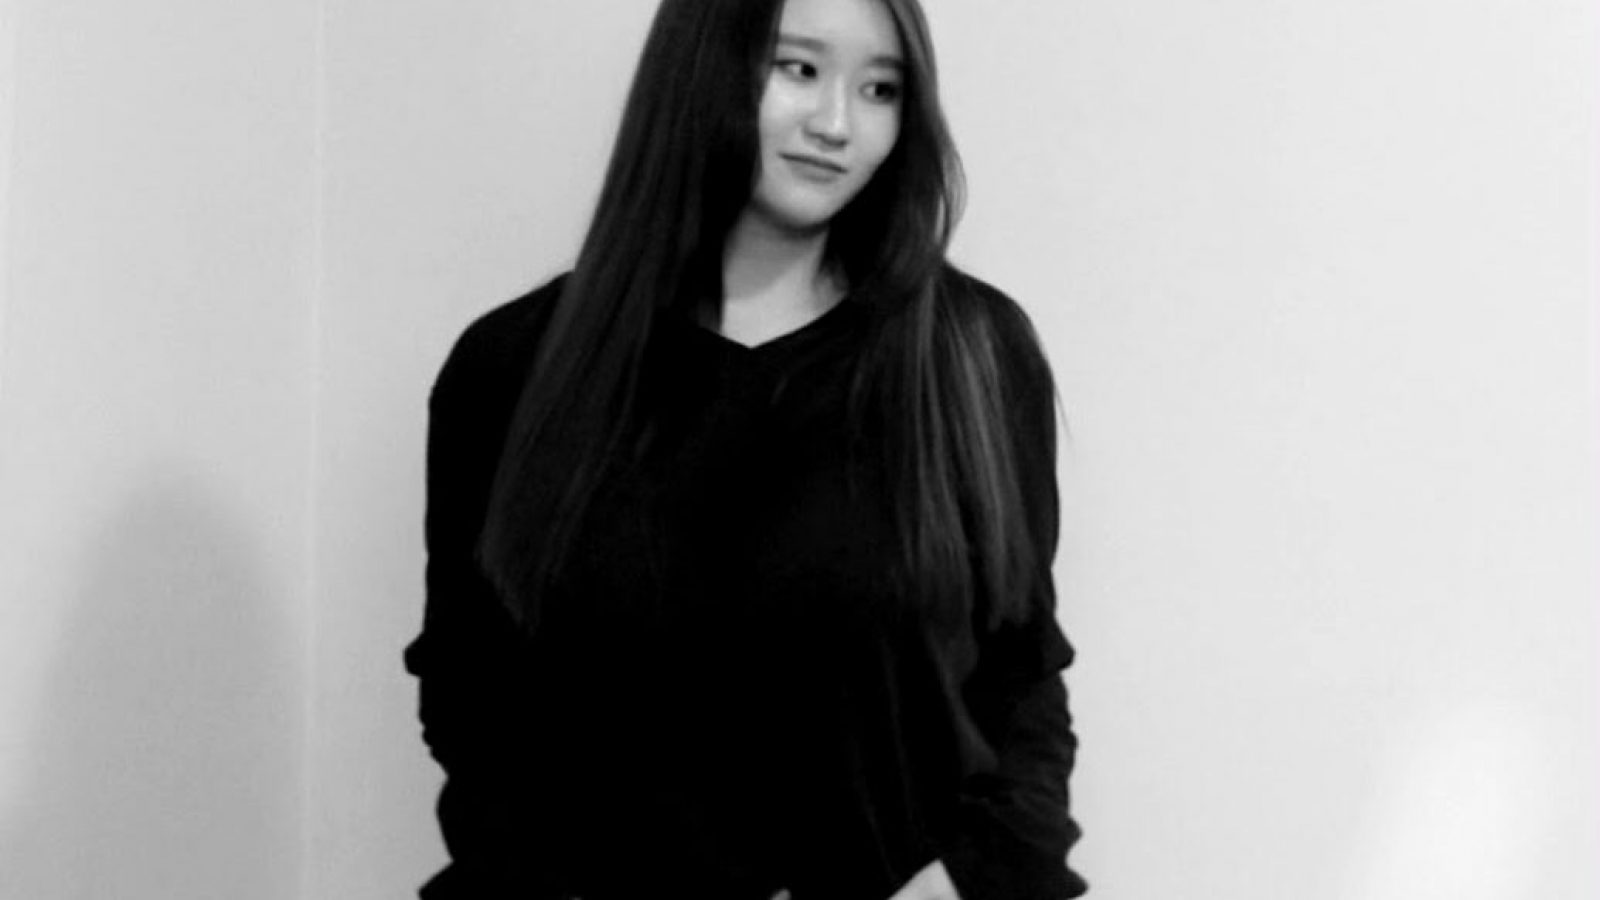 Black and white photo of Irene Chun with her hands in her pocket